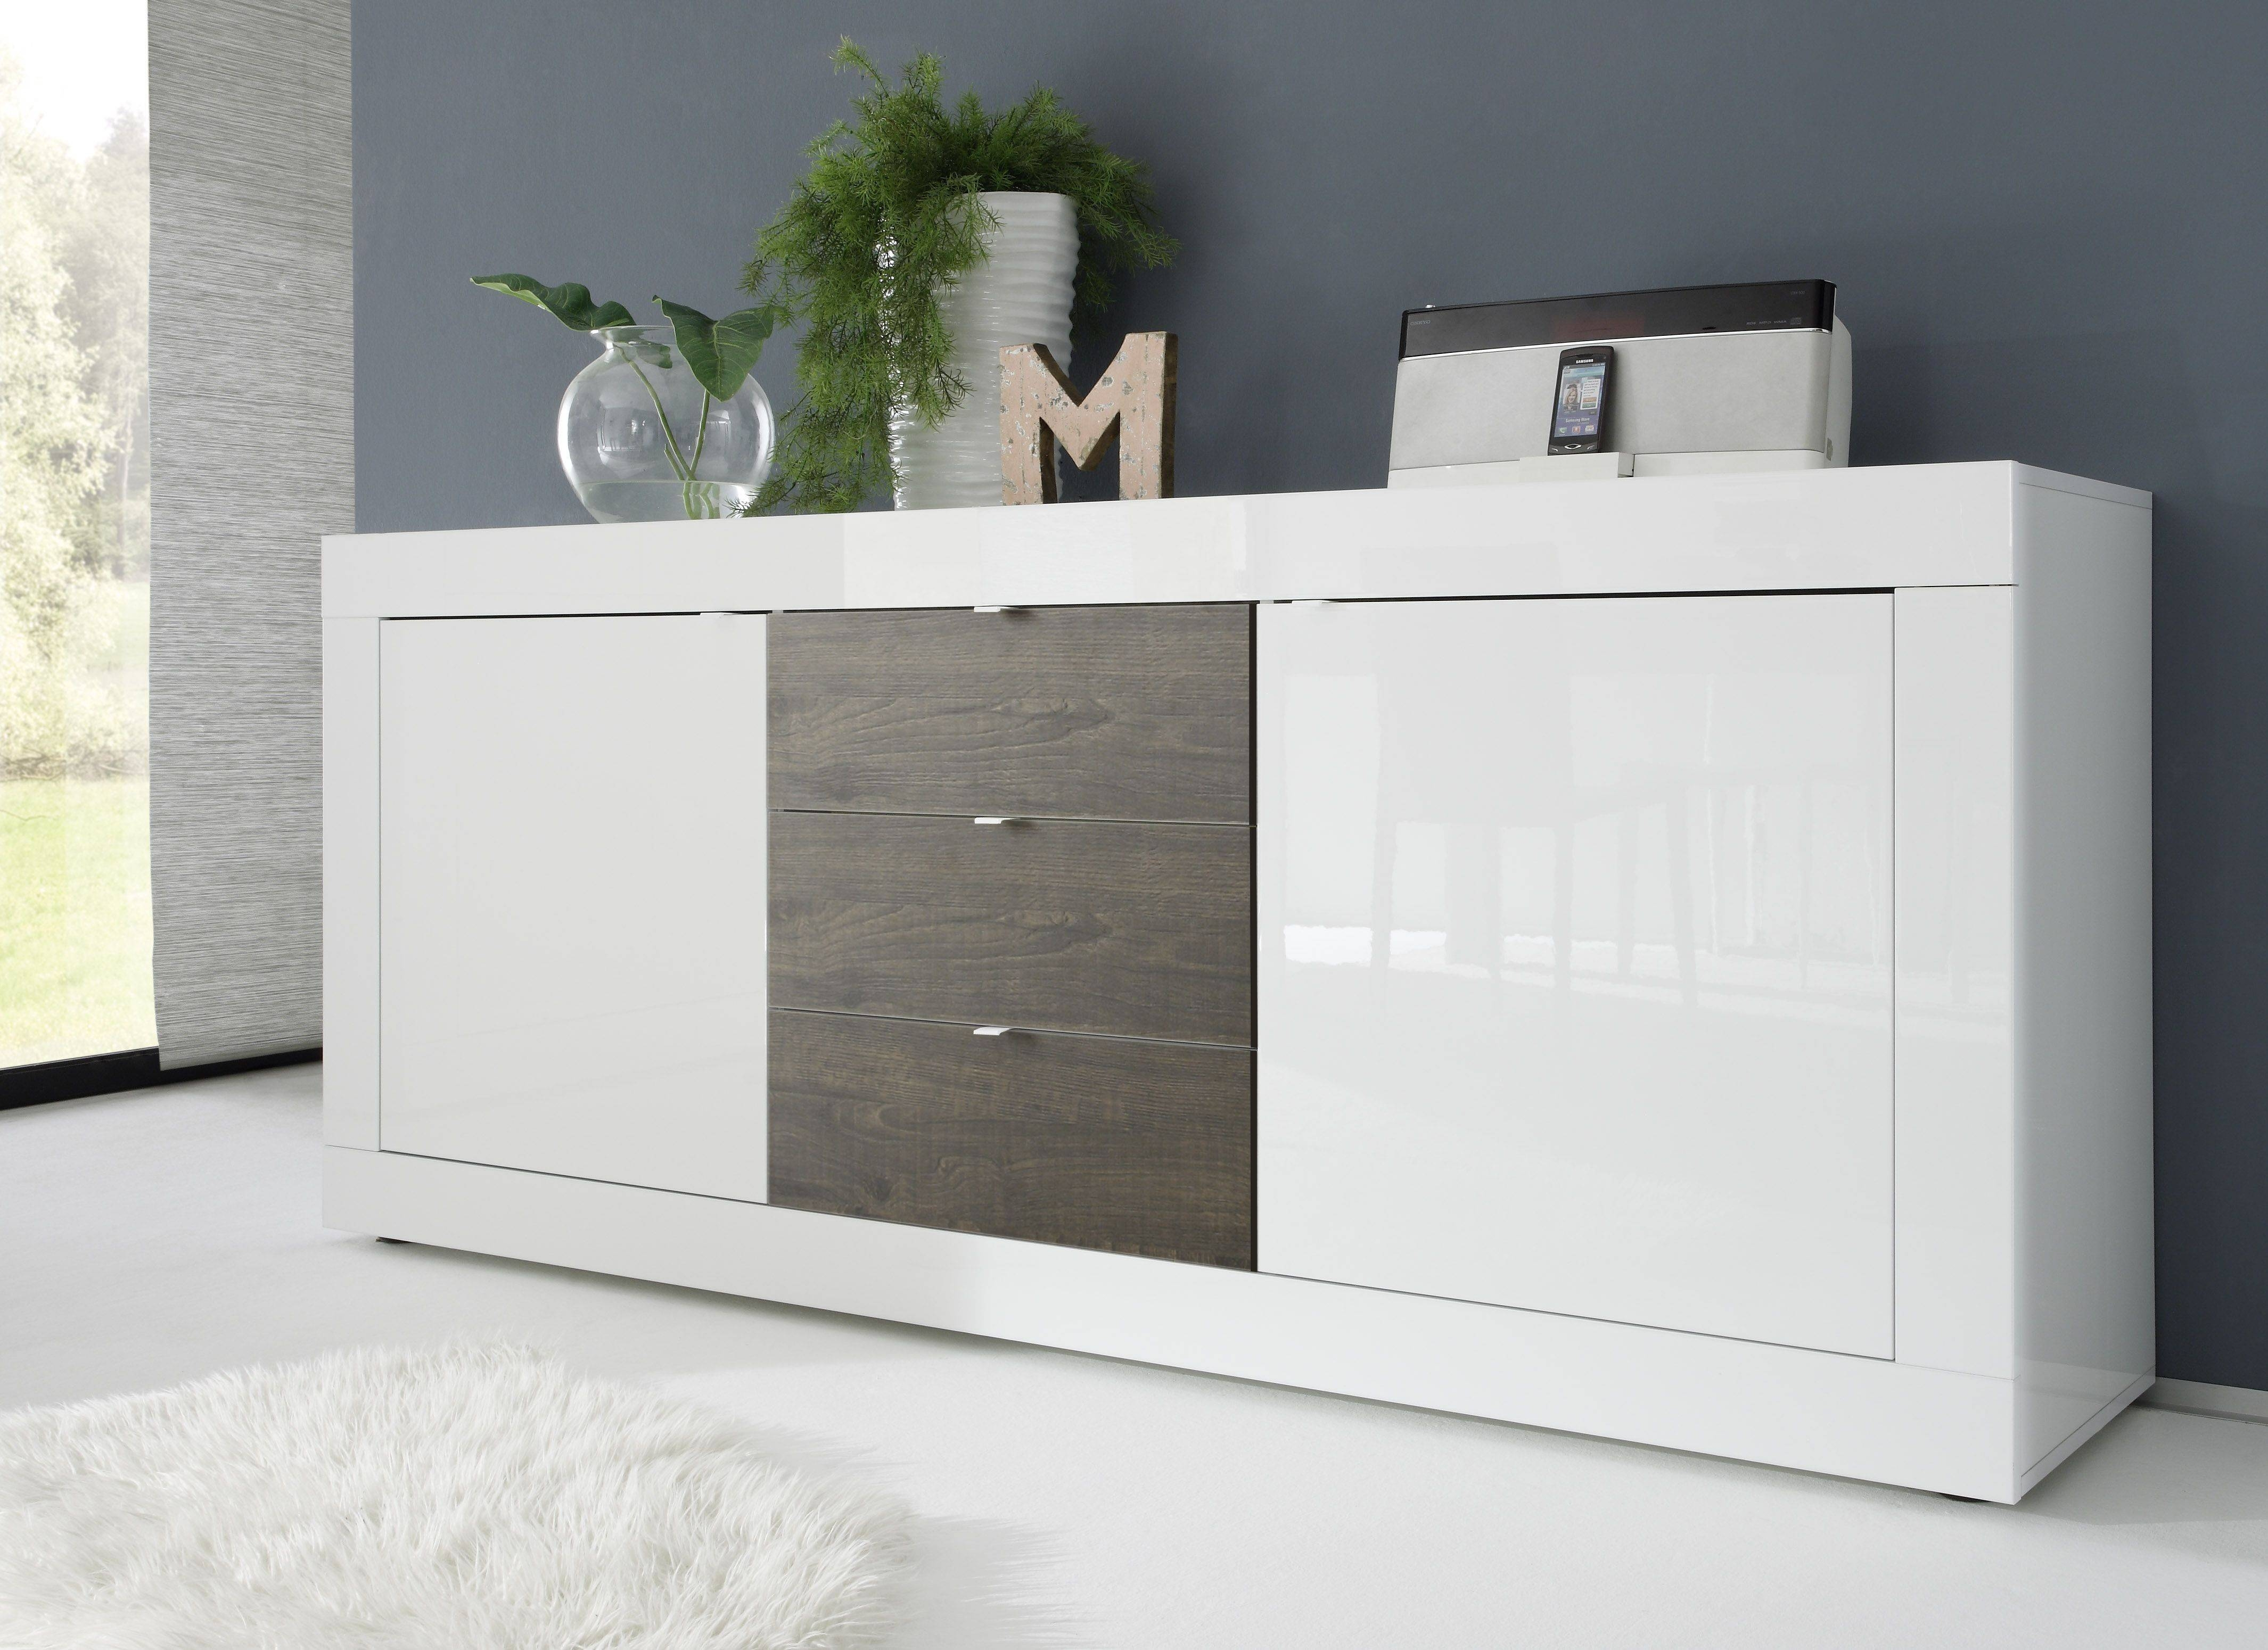 Dolcevita Ii White Gloss Sideboard – Sideboards – Sena Home Furniture Intended For 2018 High Gloss Grey Sideboards (View 12 of 15)